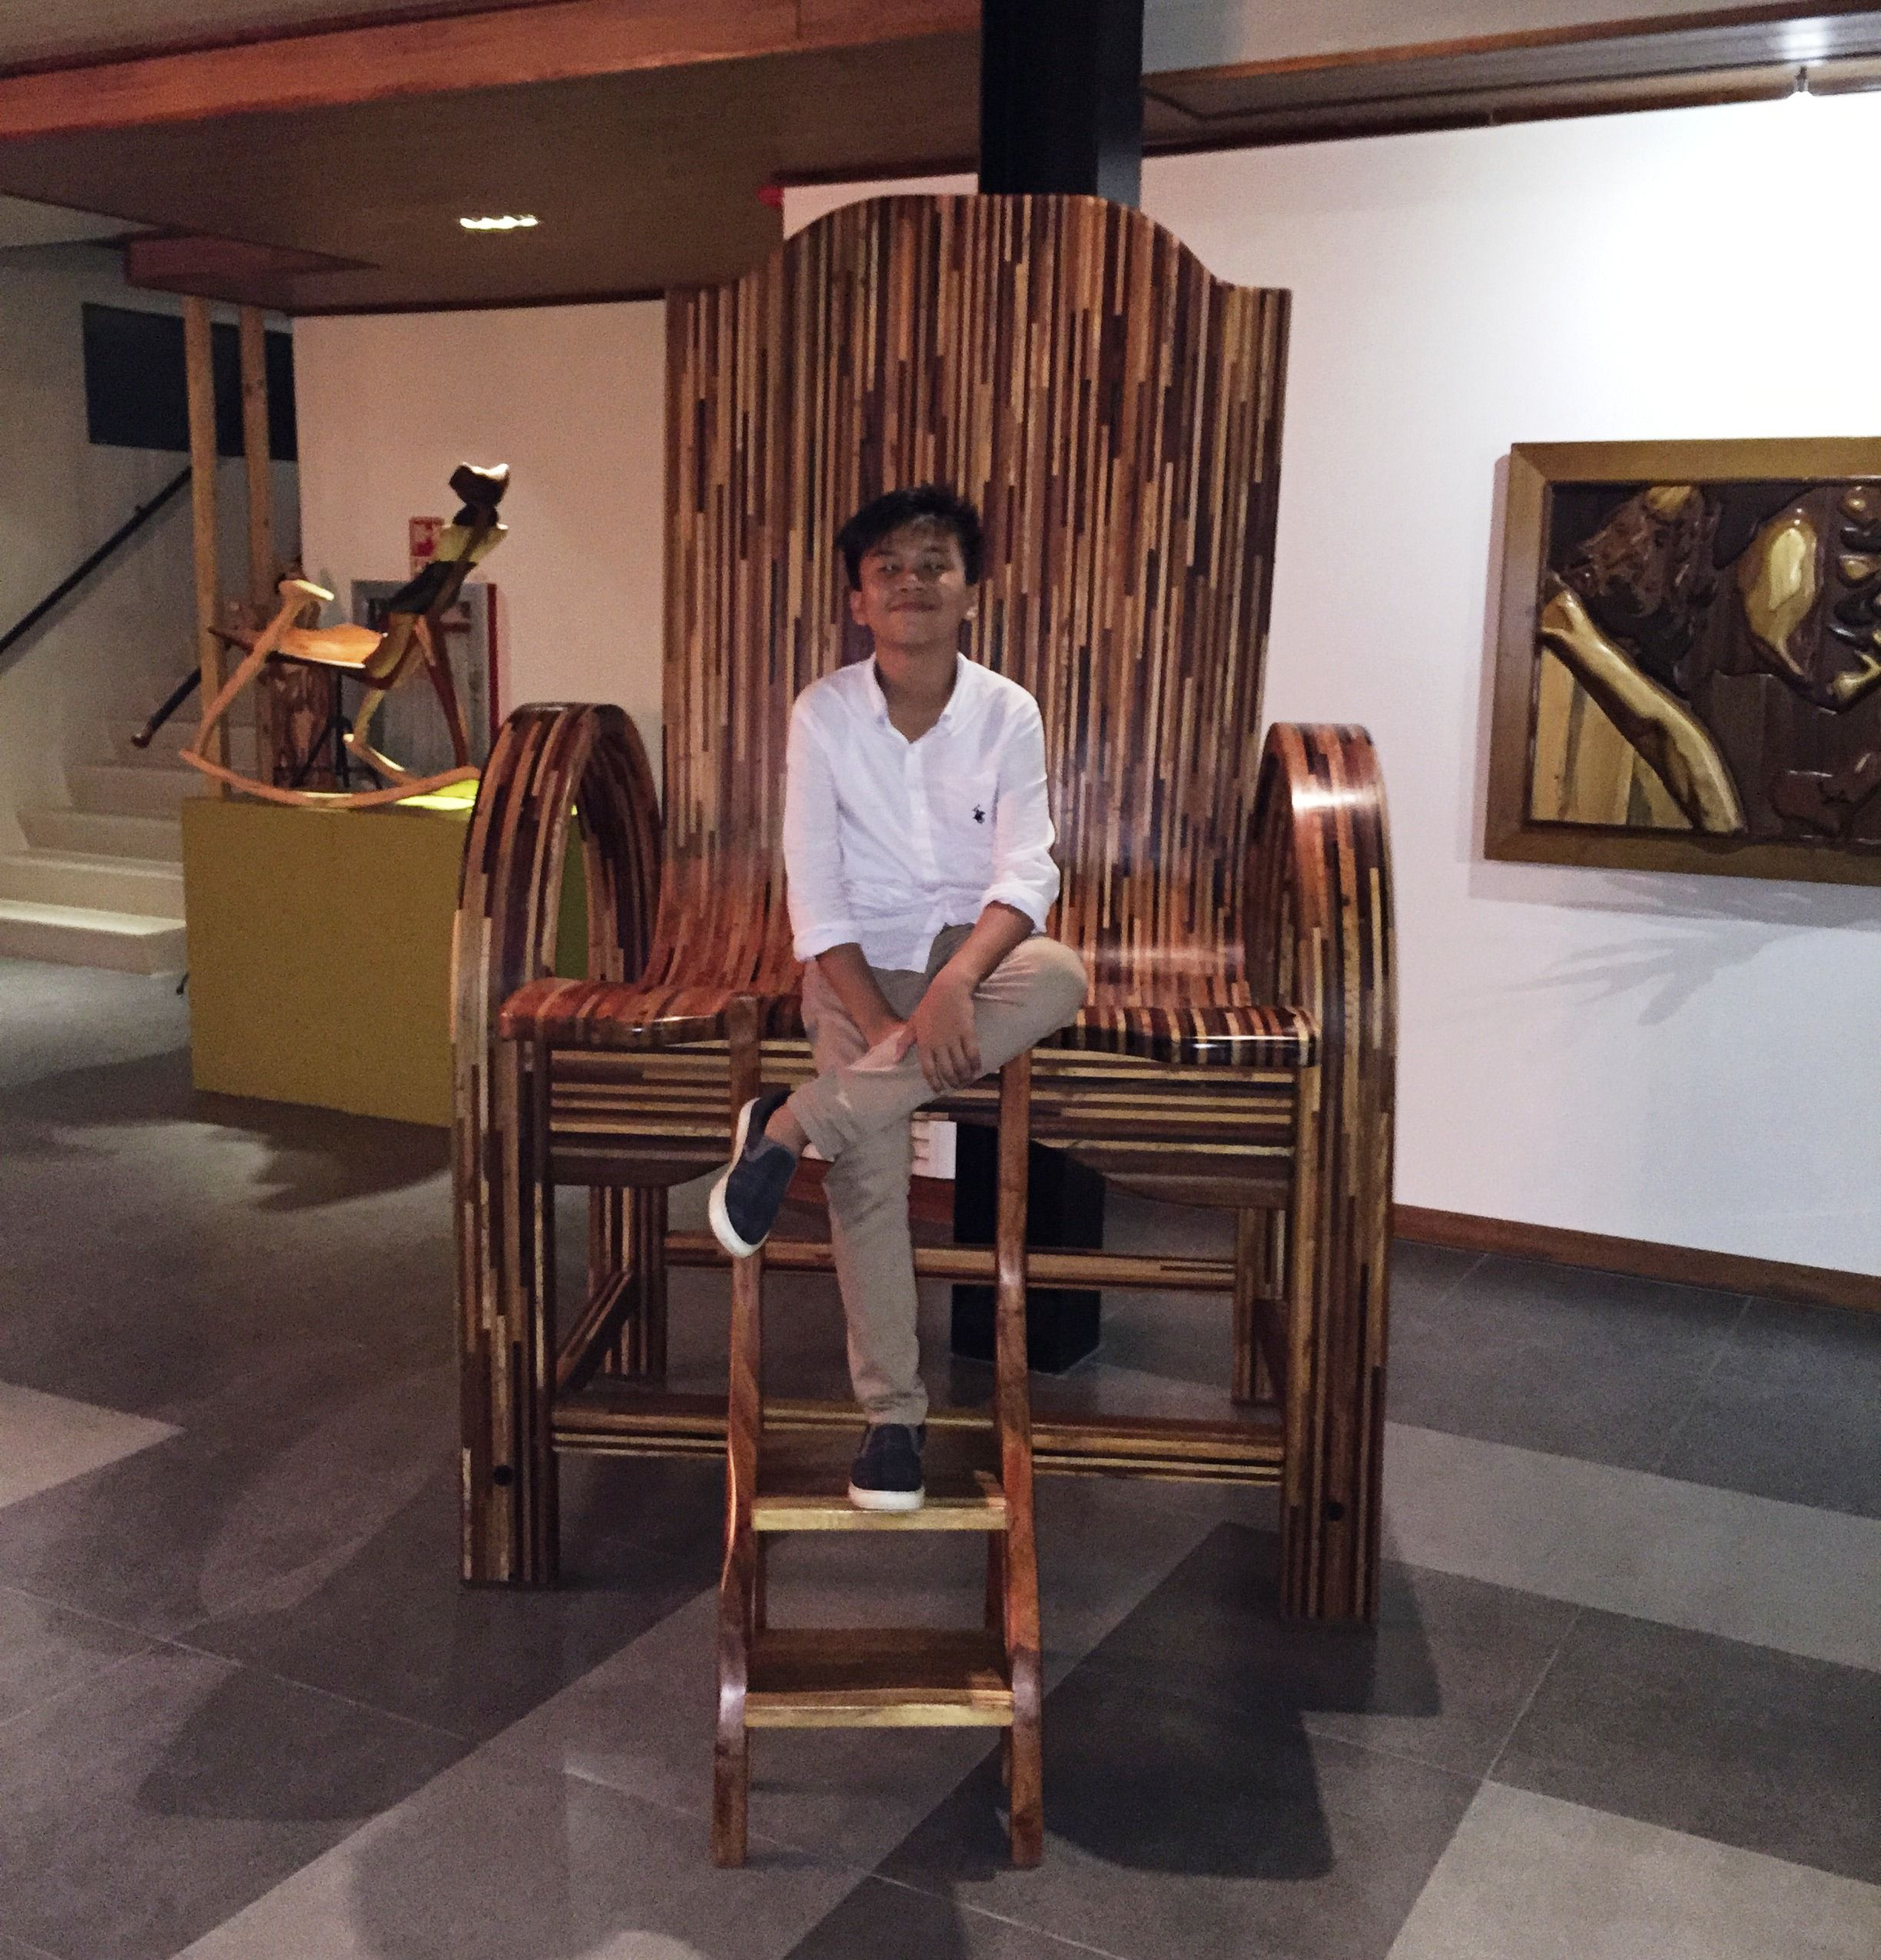 Attractive Oversized Wooden Chair   A Furniture Seen At Green Canyon Resort,  Philippines, During A Family Memberu0027s Wedding. #GreenCanyonResort  #GreenCanyon